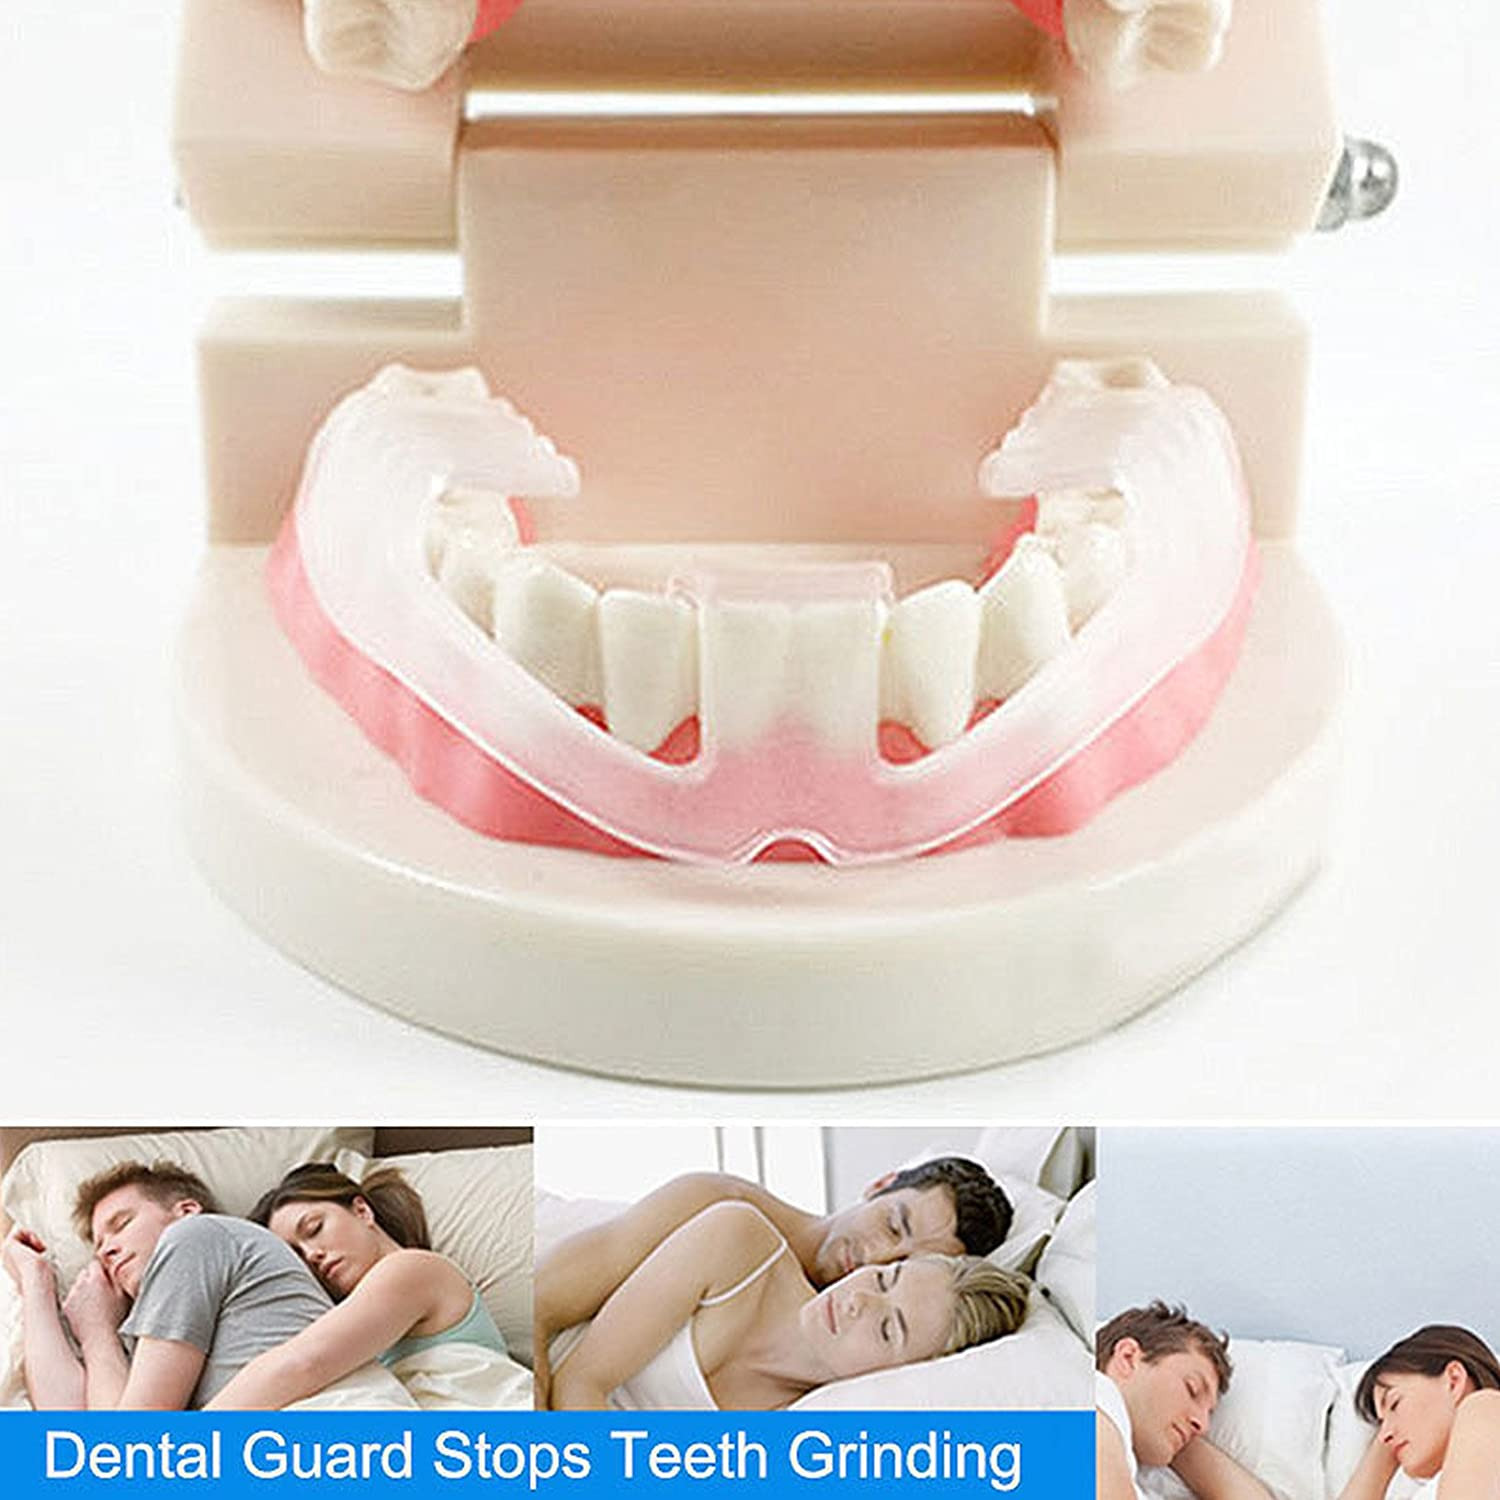 Toyofmine Tooth Grinding Storage Case Hot Dental Mouth Guard Bruxism Splint Night Sleeping